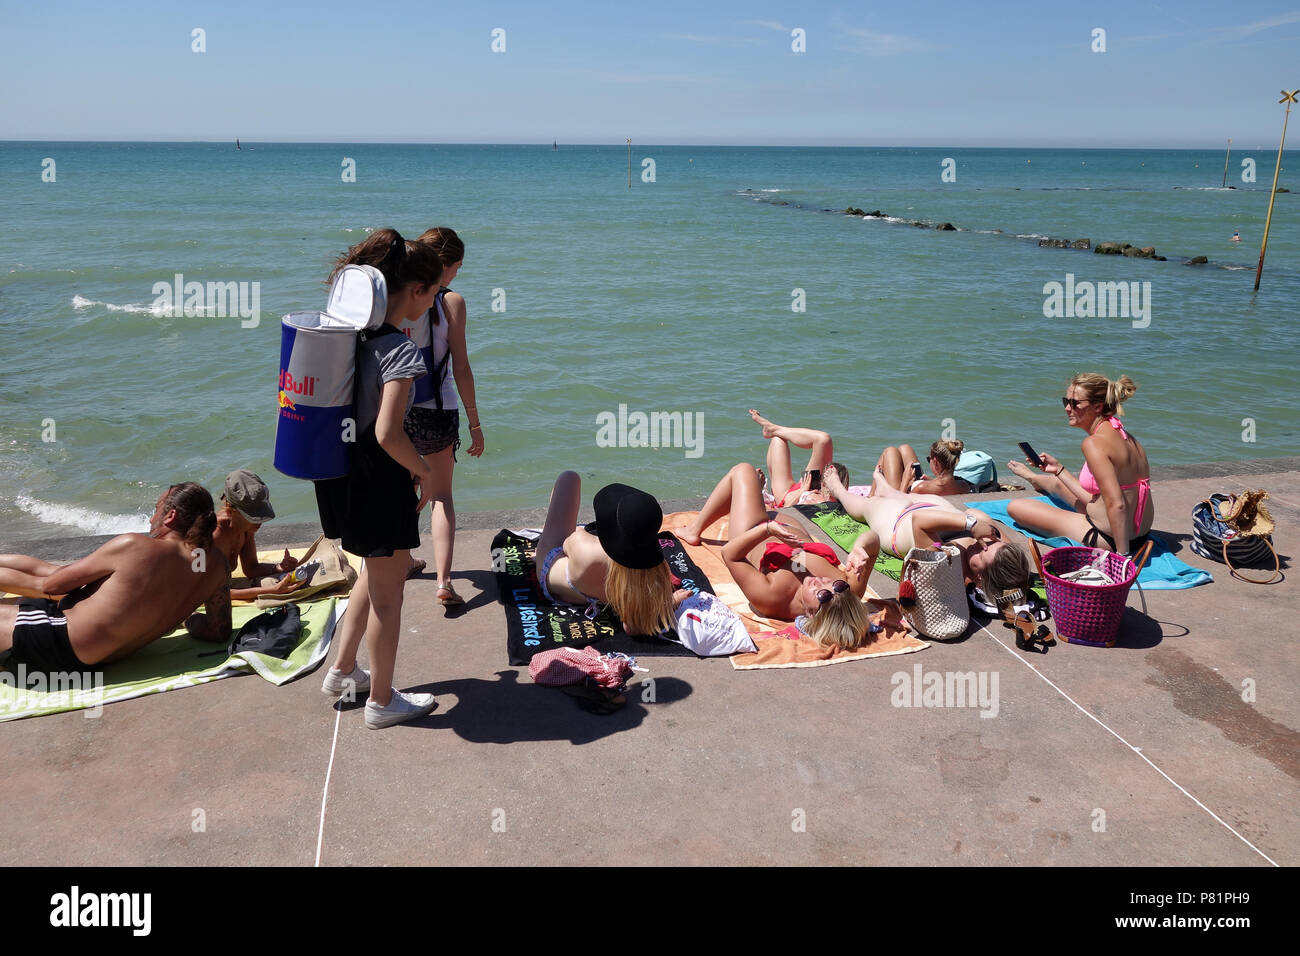 Promotion girls handing out complimentary Red Bull drinks at Wimereux in the Pas-de-Calais department in the Hauts-de-France region of France. - Stock Image